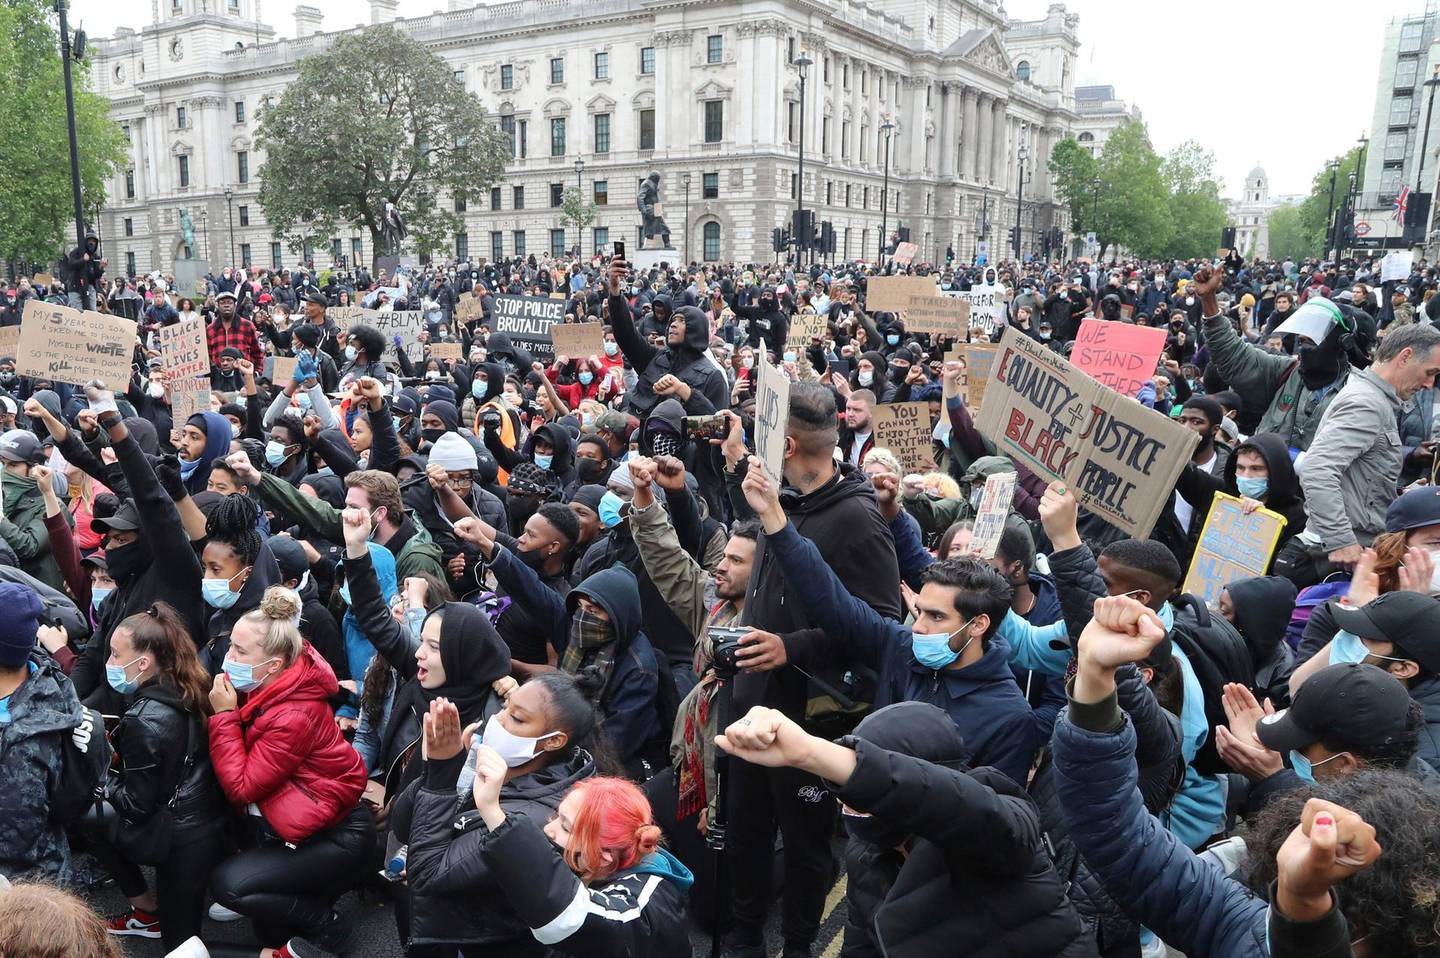 Protesters gather in Parliament Square during the Black Lives Matter protest rally in Whitehall, London, in memory of George Floyd who was killed on May 25 while in police custody in the US city of Minneapolis. (Gareth Fuller/PA via AP)